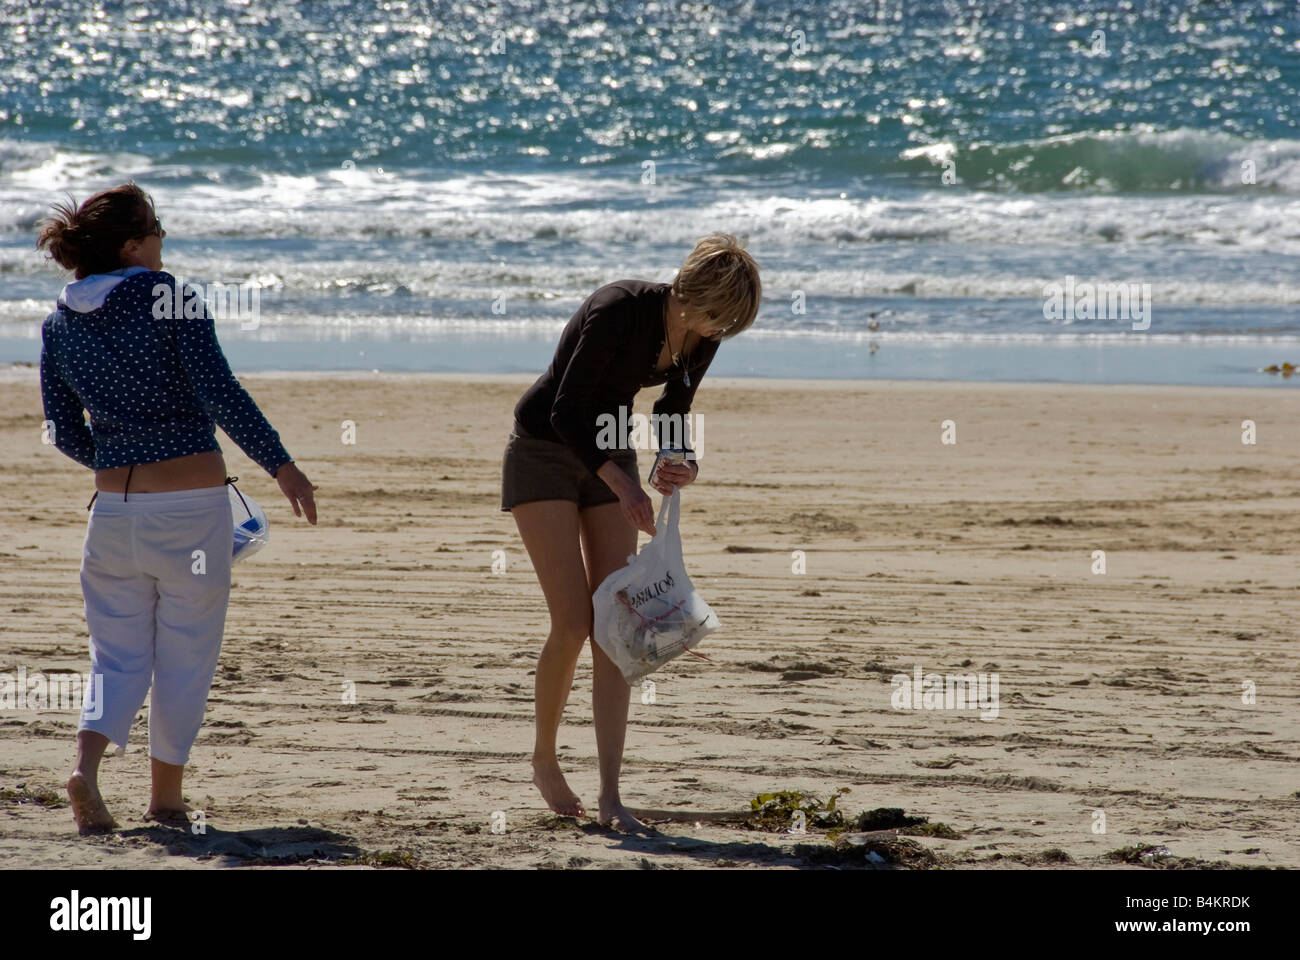 2 Women 20's Picking up Beach Trash balboa peninsula newport beach, orange county, california, ca usa - Stock Image